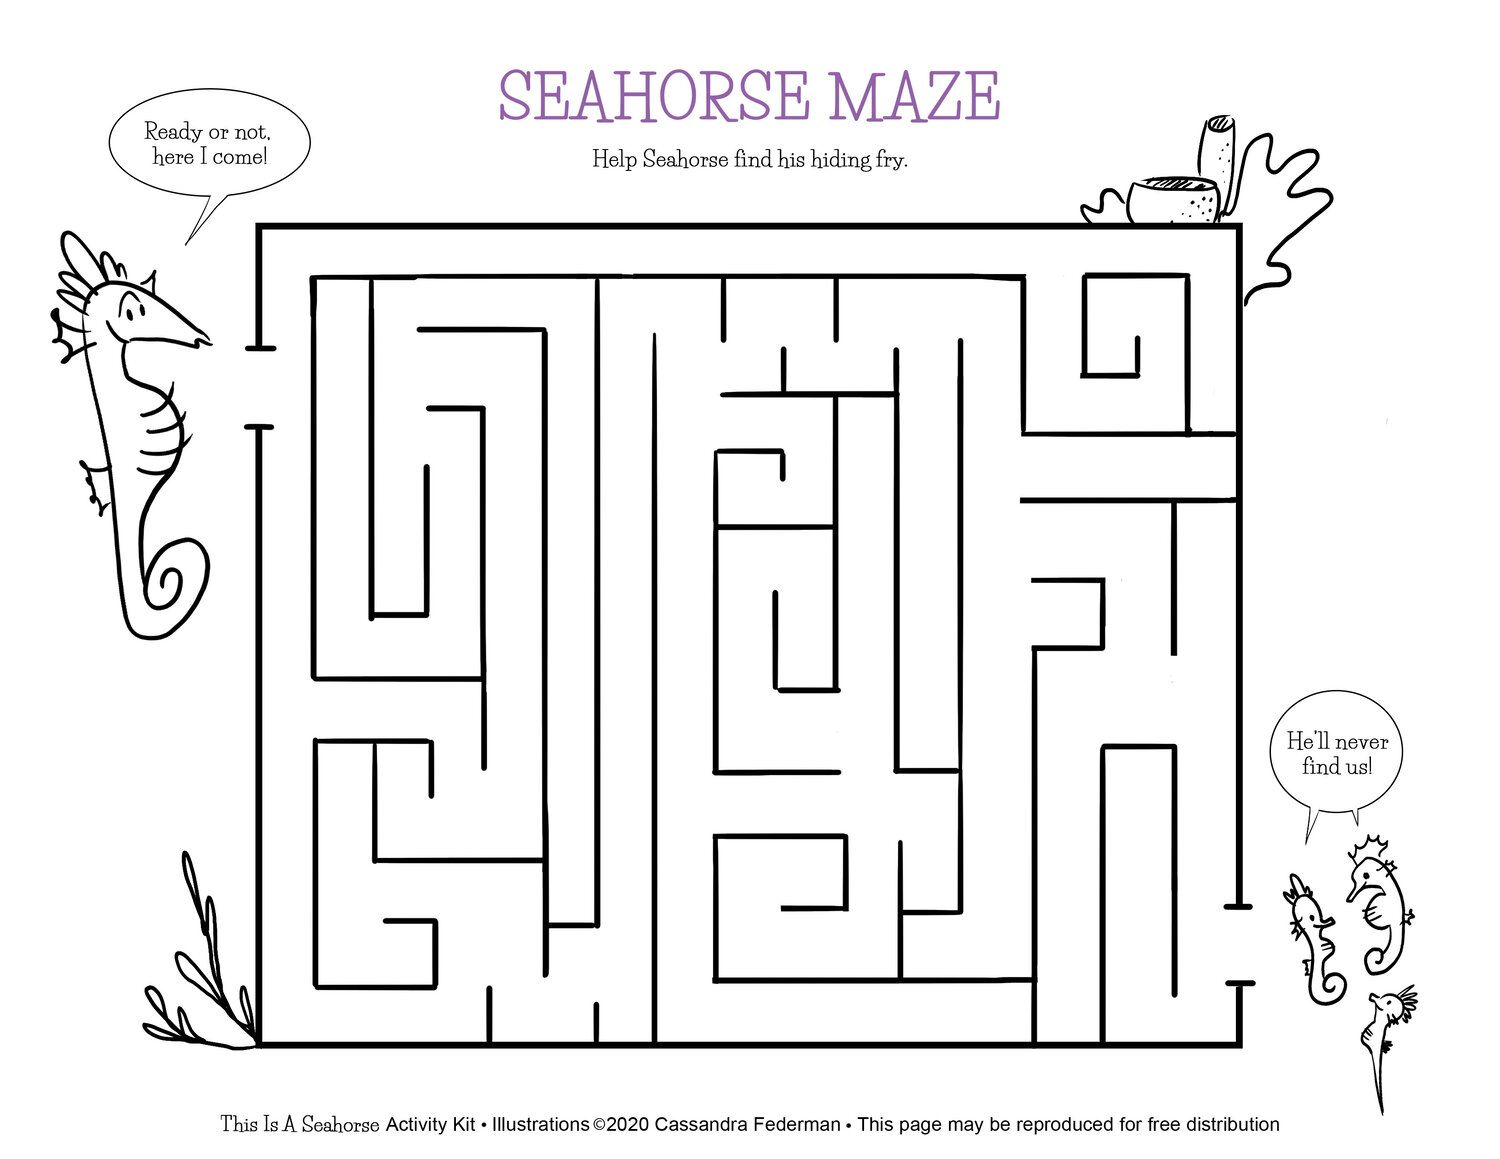 Seahorse Maze Worksheets For Kids Activity Kits Teaching Tools [ 1159 x 1500 Pixel ]